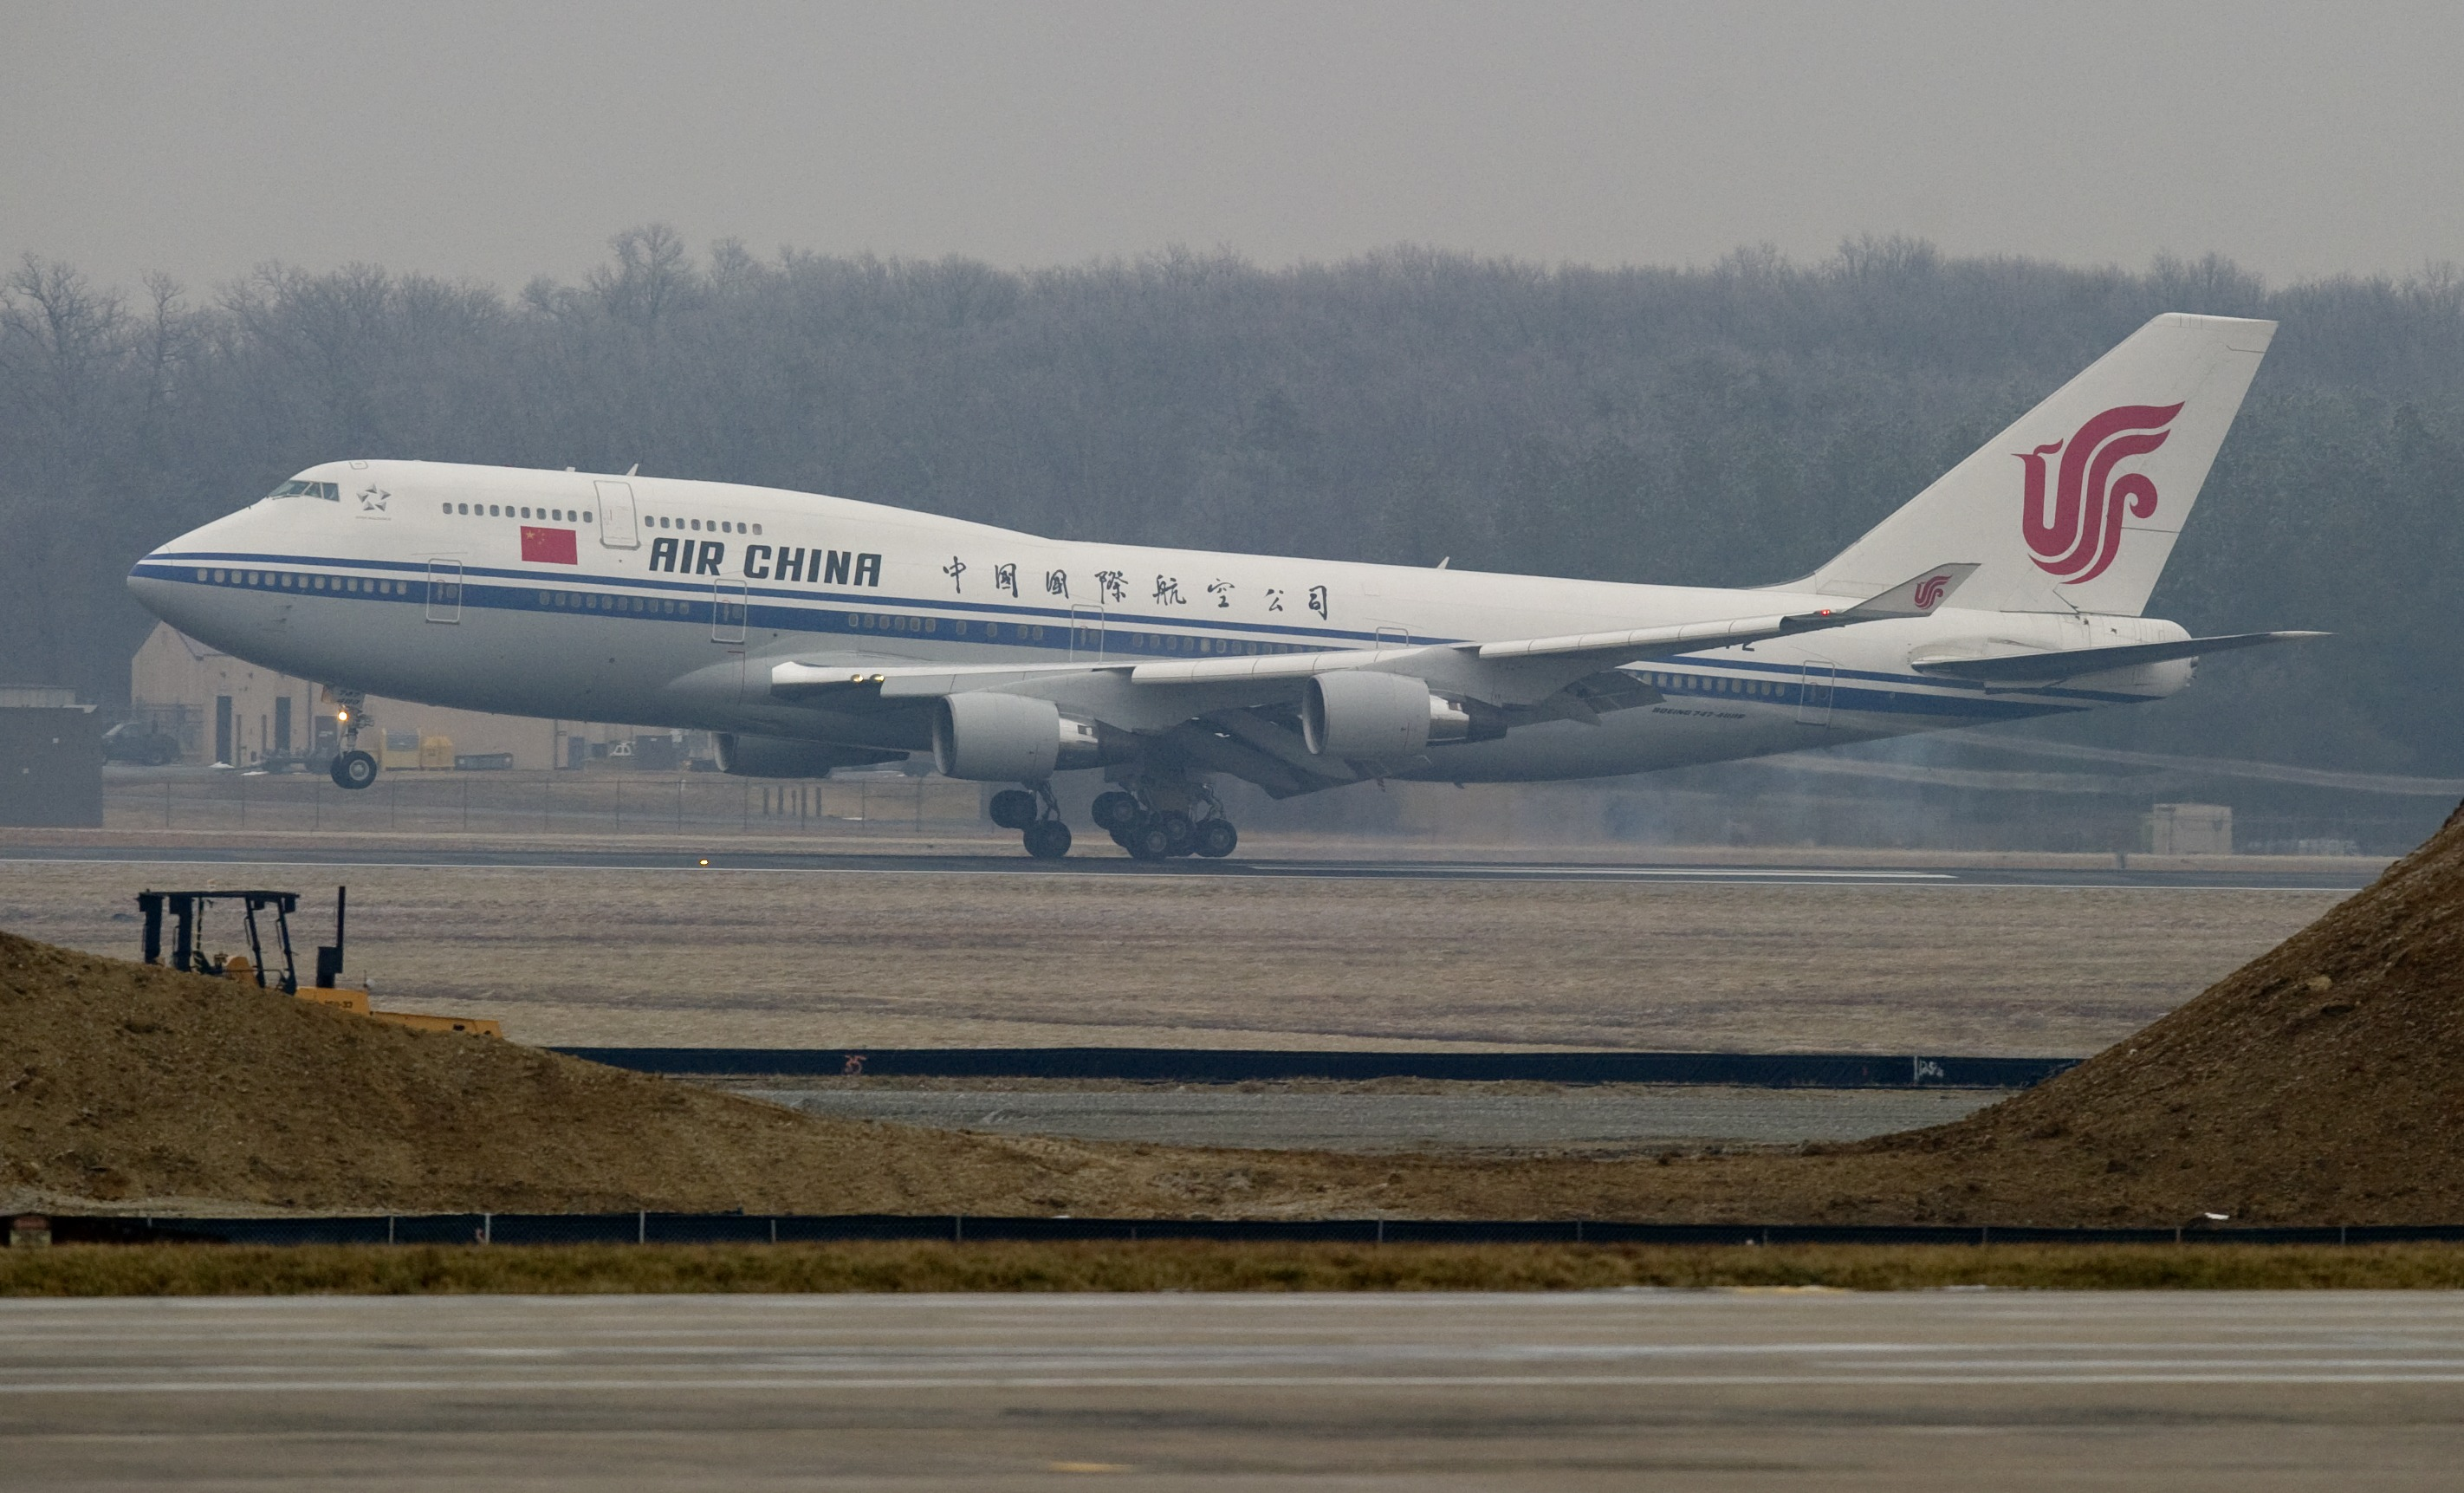 An Air China Boeing 747 with Chinese President Hu Jintao aboard lands at Andrews Air Force Base in Maryland, January 18, 2011. (SAUL LOEB/AFP/Getty Images)